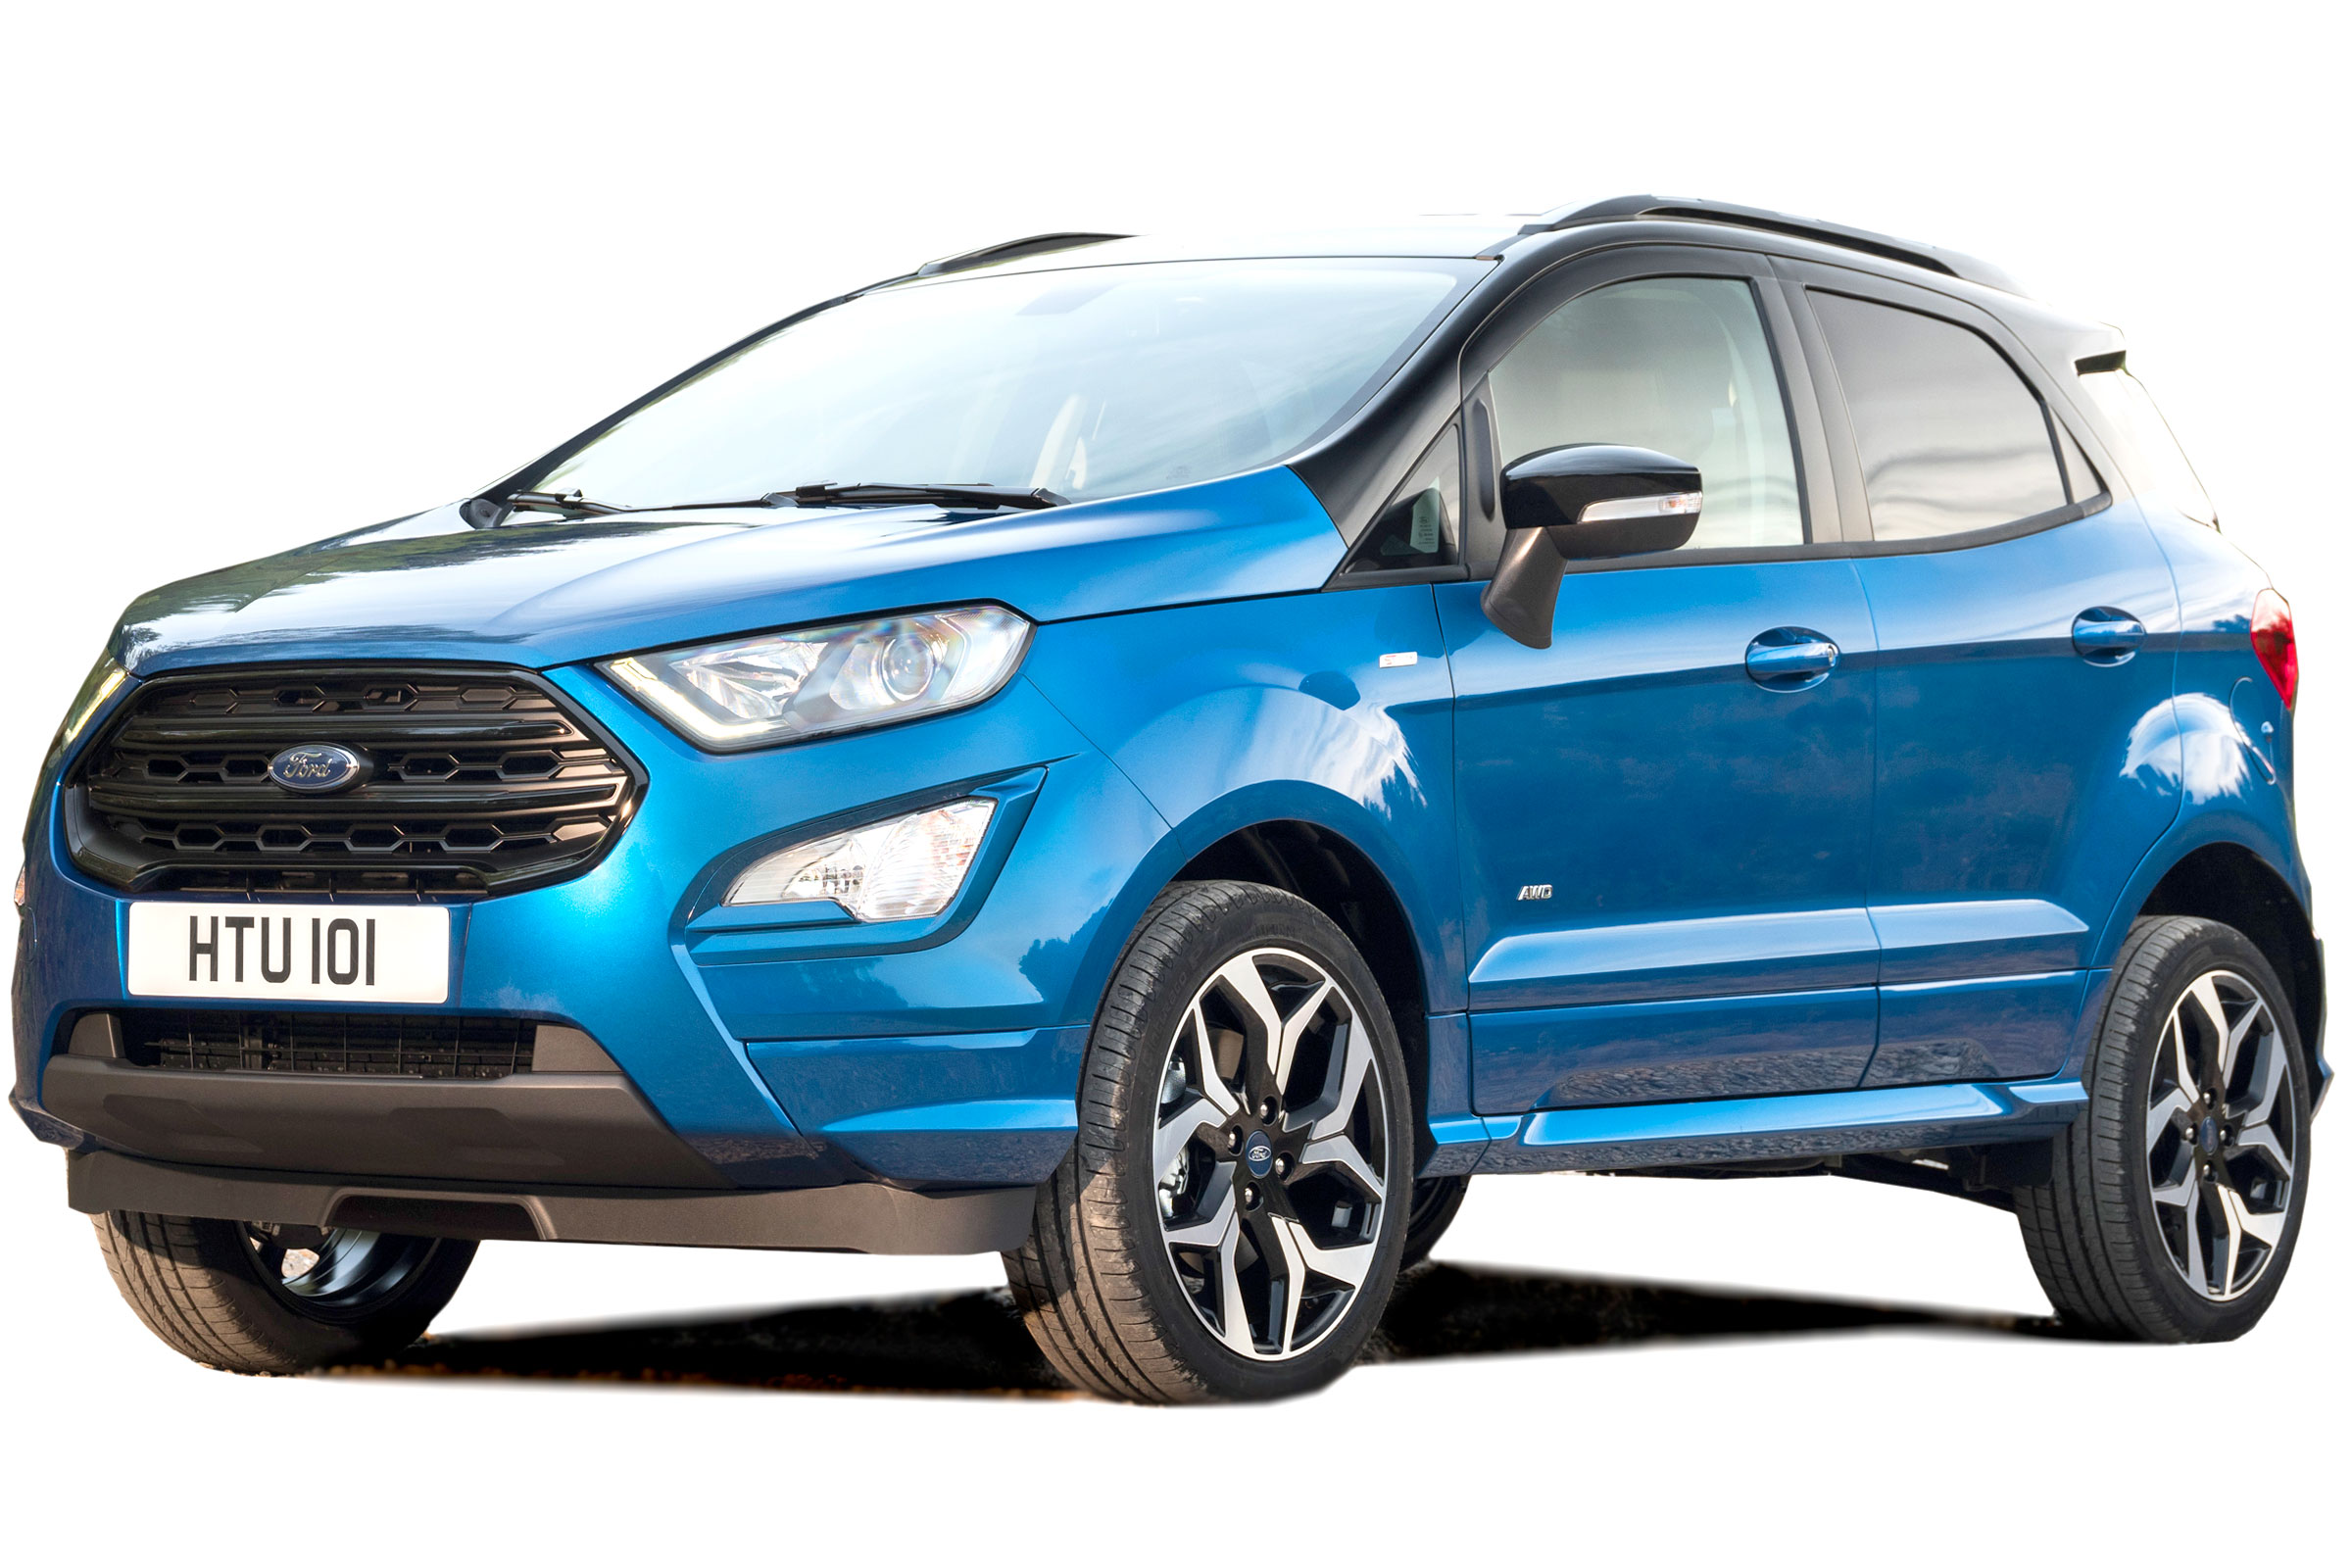 Ford Ecosport Owner Reviews Mpg Problems Reliability 2020 Review Carbuyer